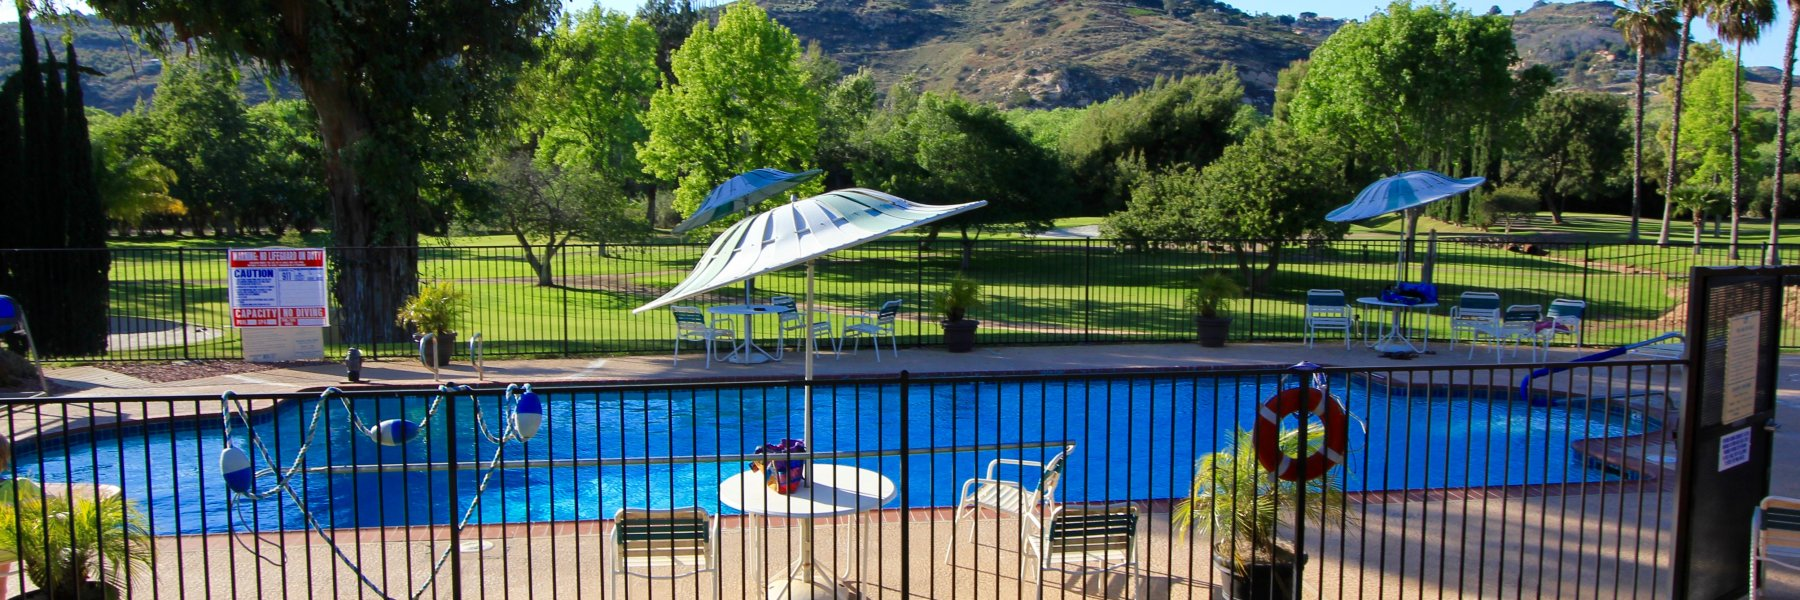 Rancho Monserate is a community of homes in Fallbrook California